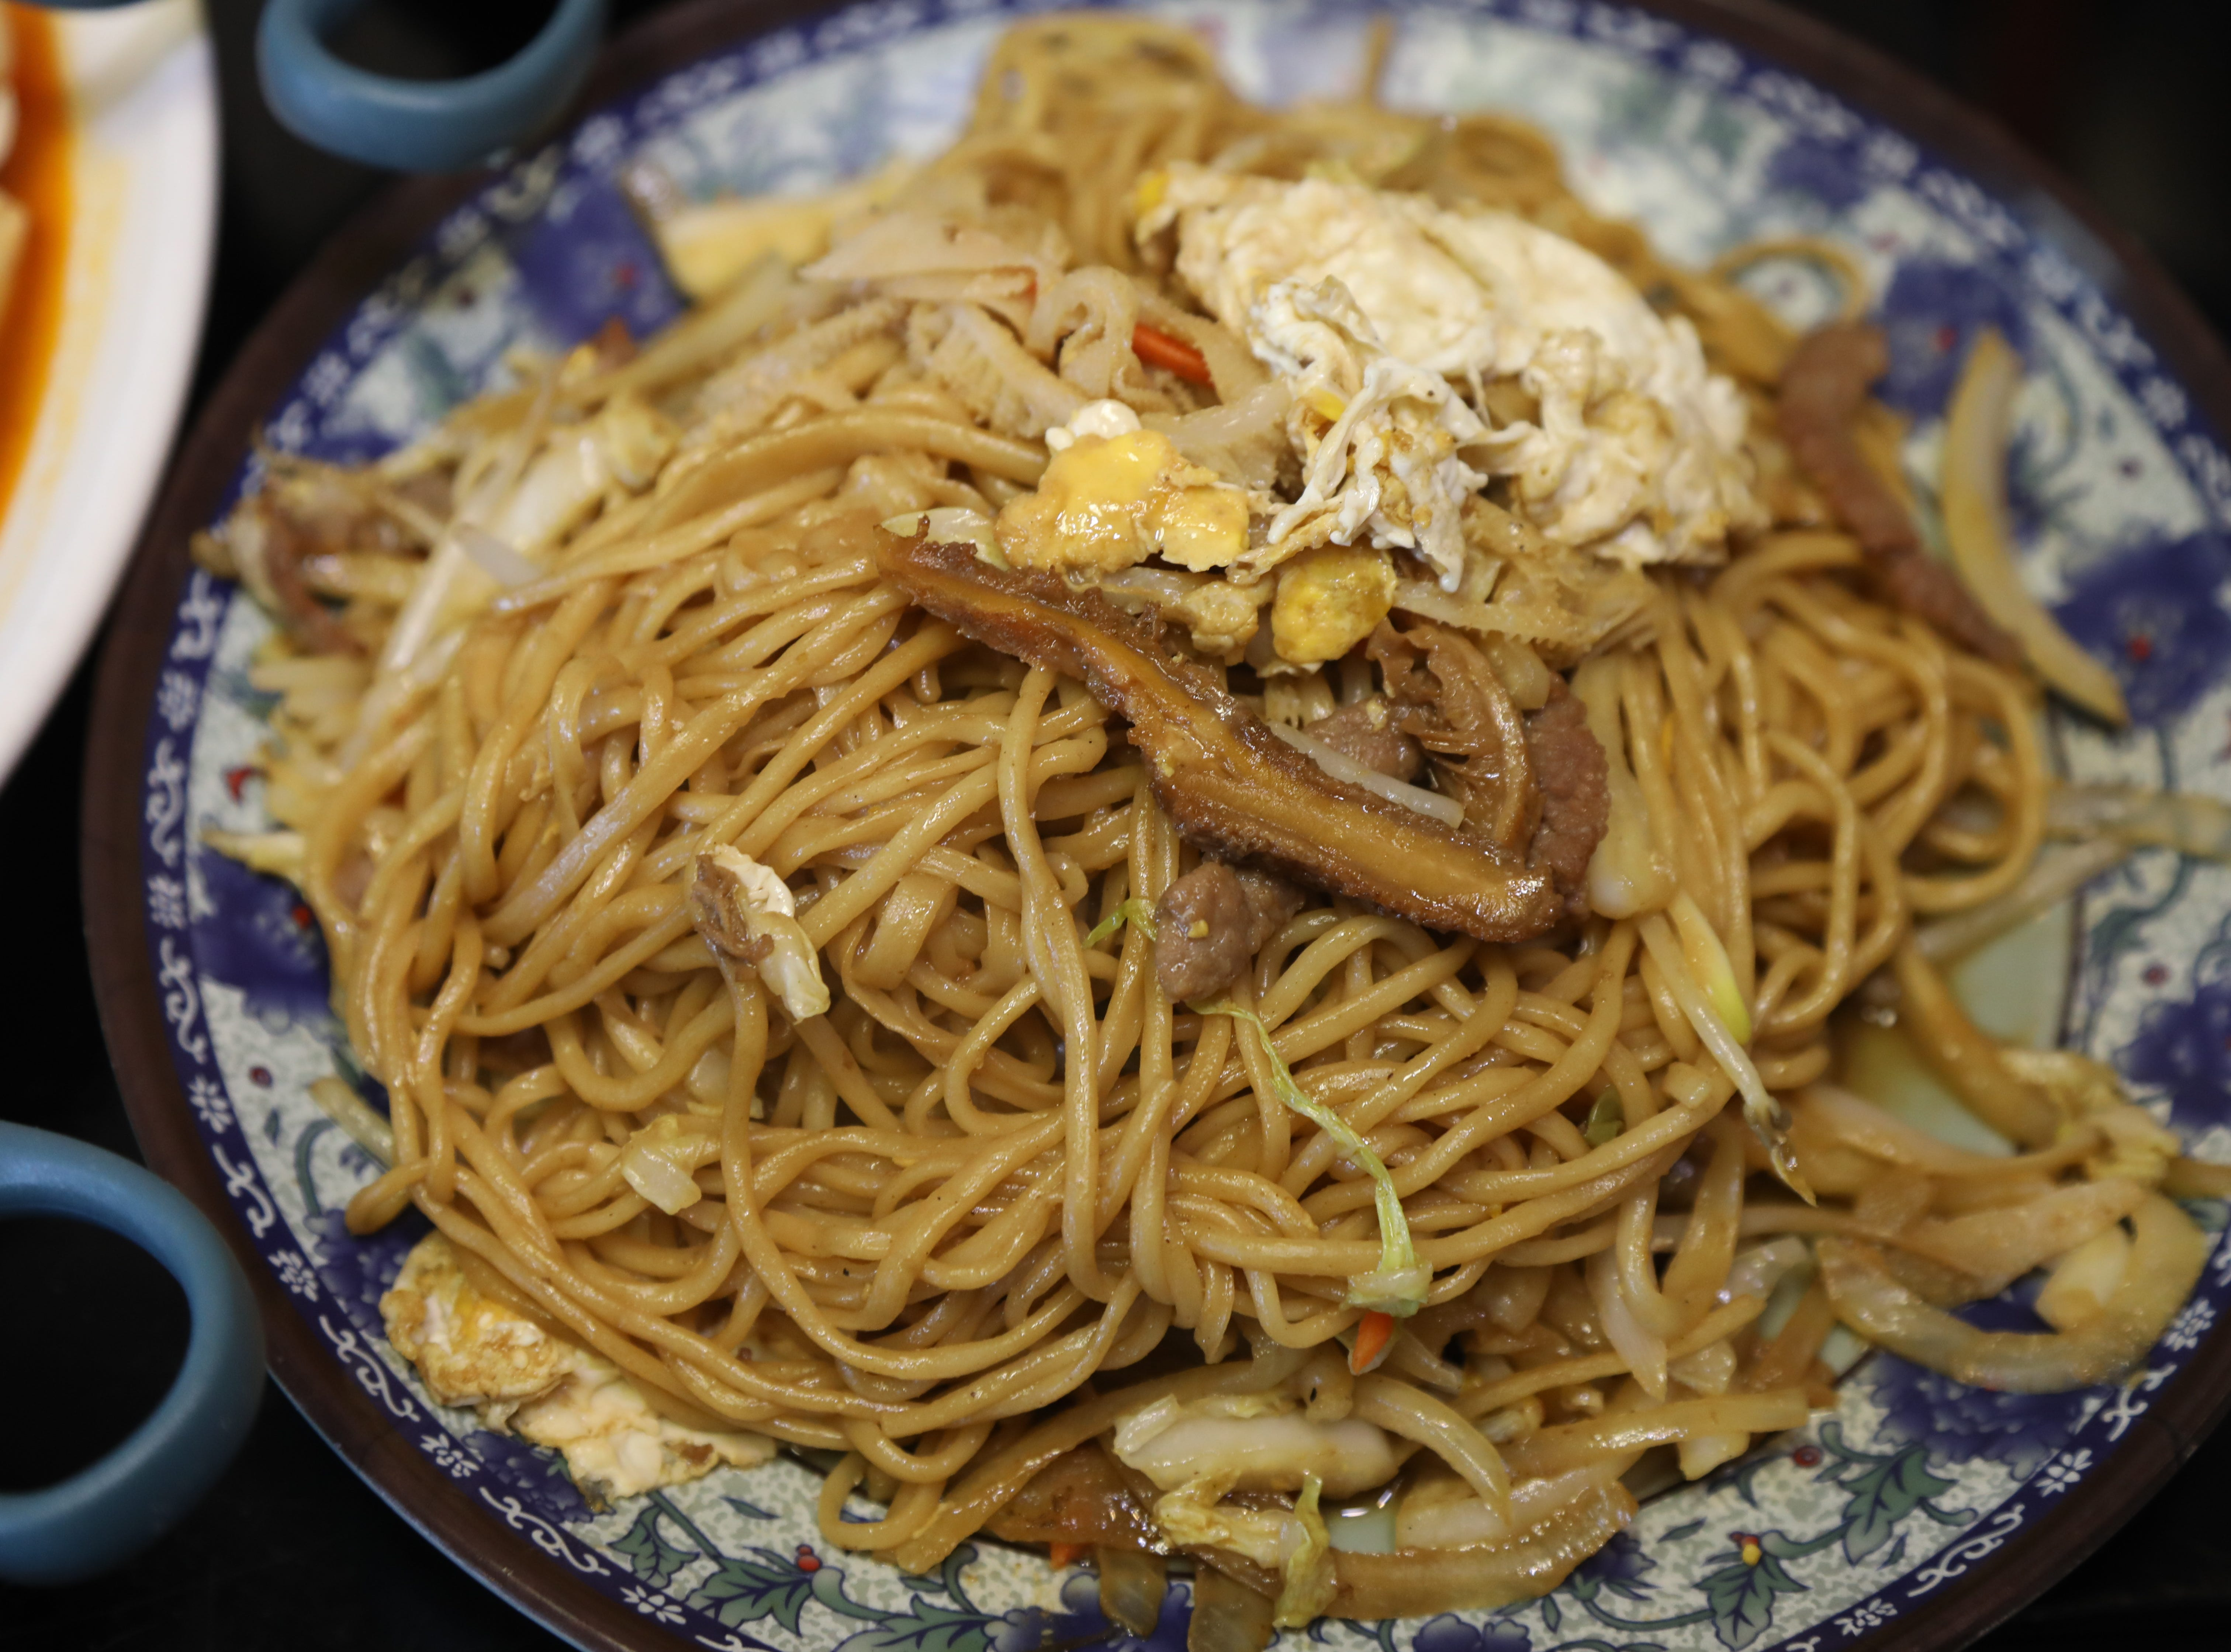 The House Special Noodle made with beef and beef tripe selection of dishes from Shan Shan Noodles.